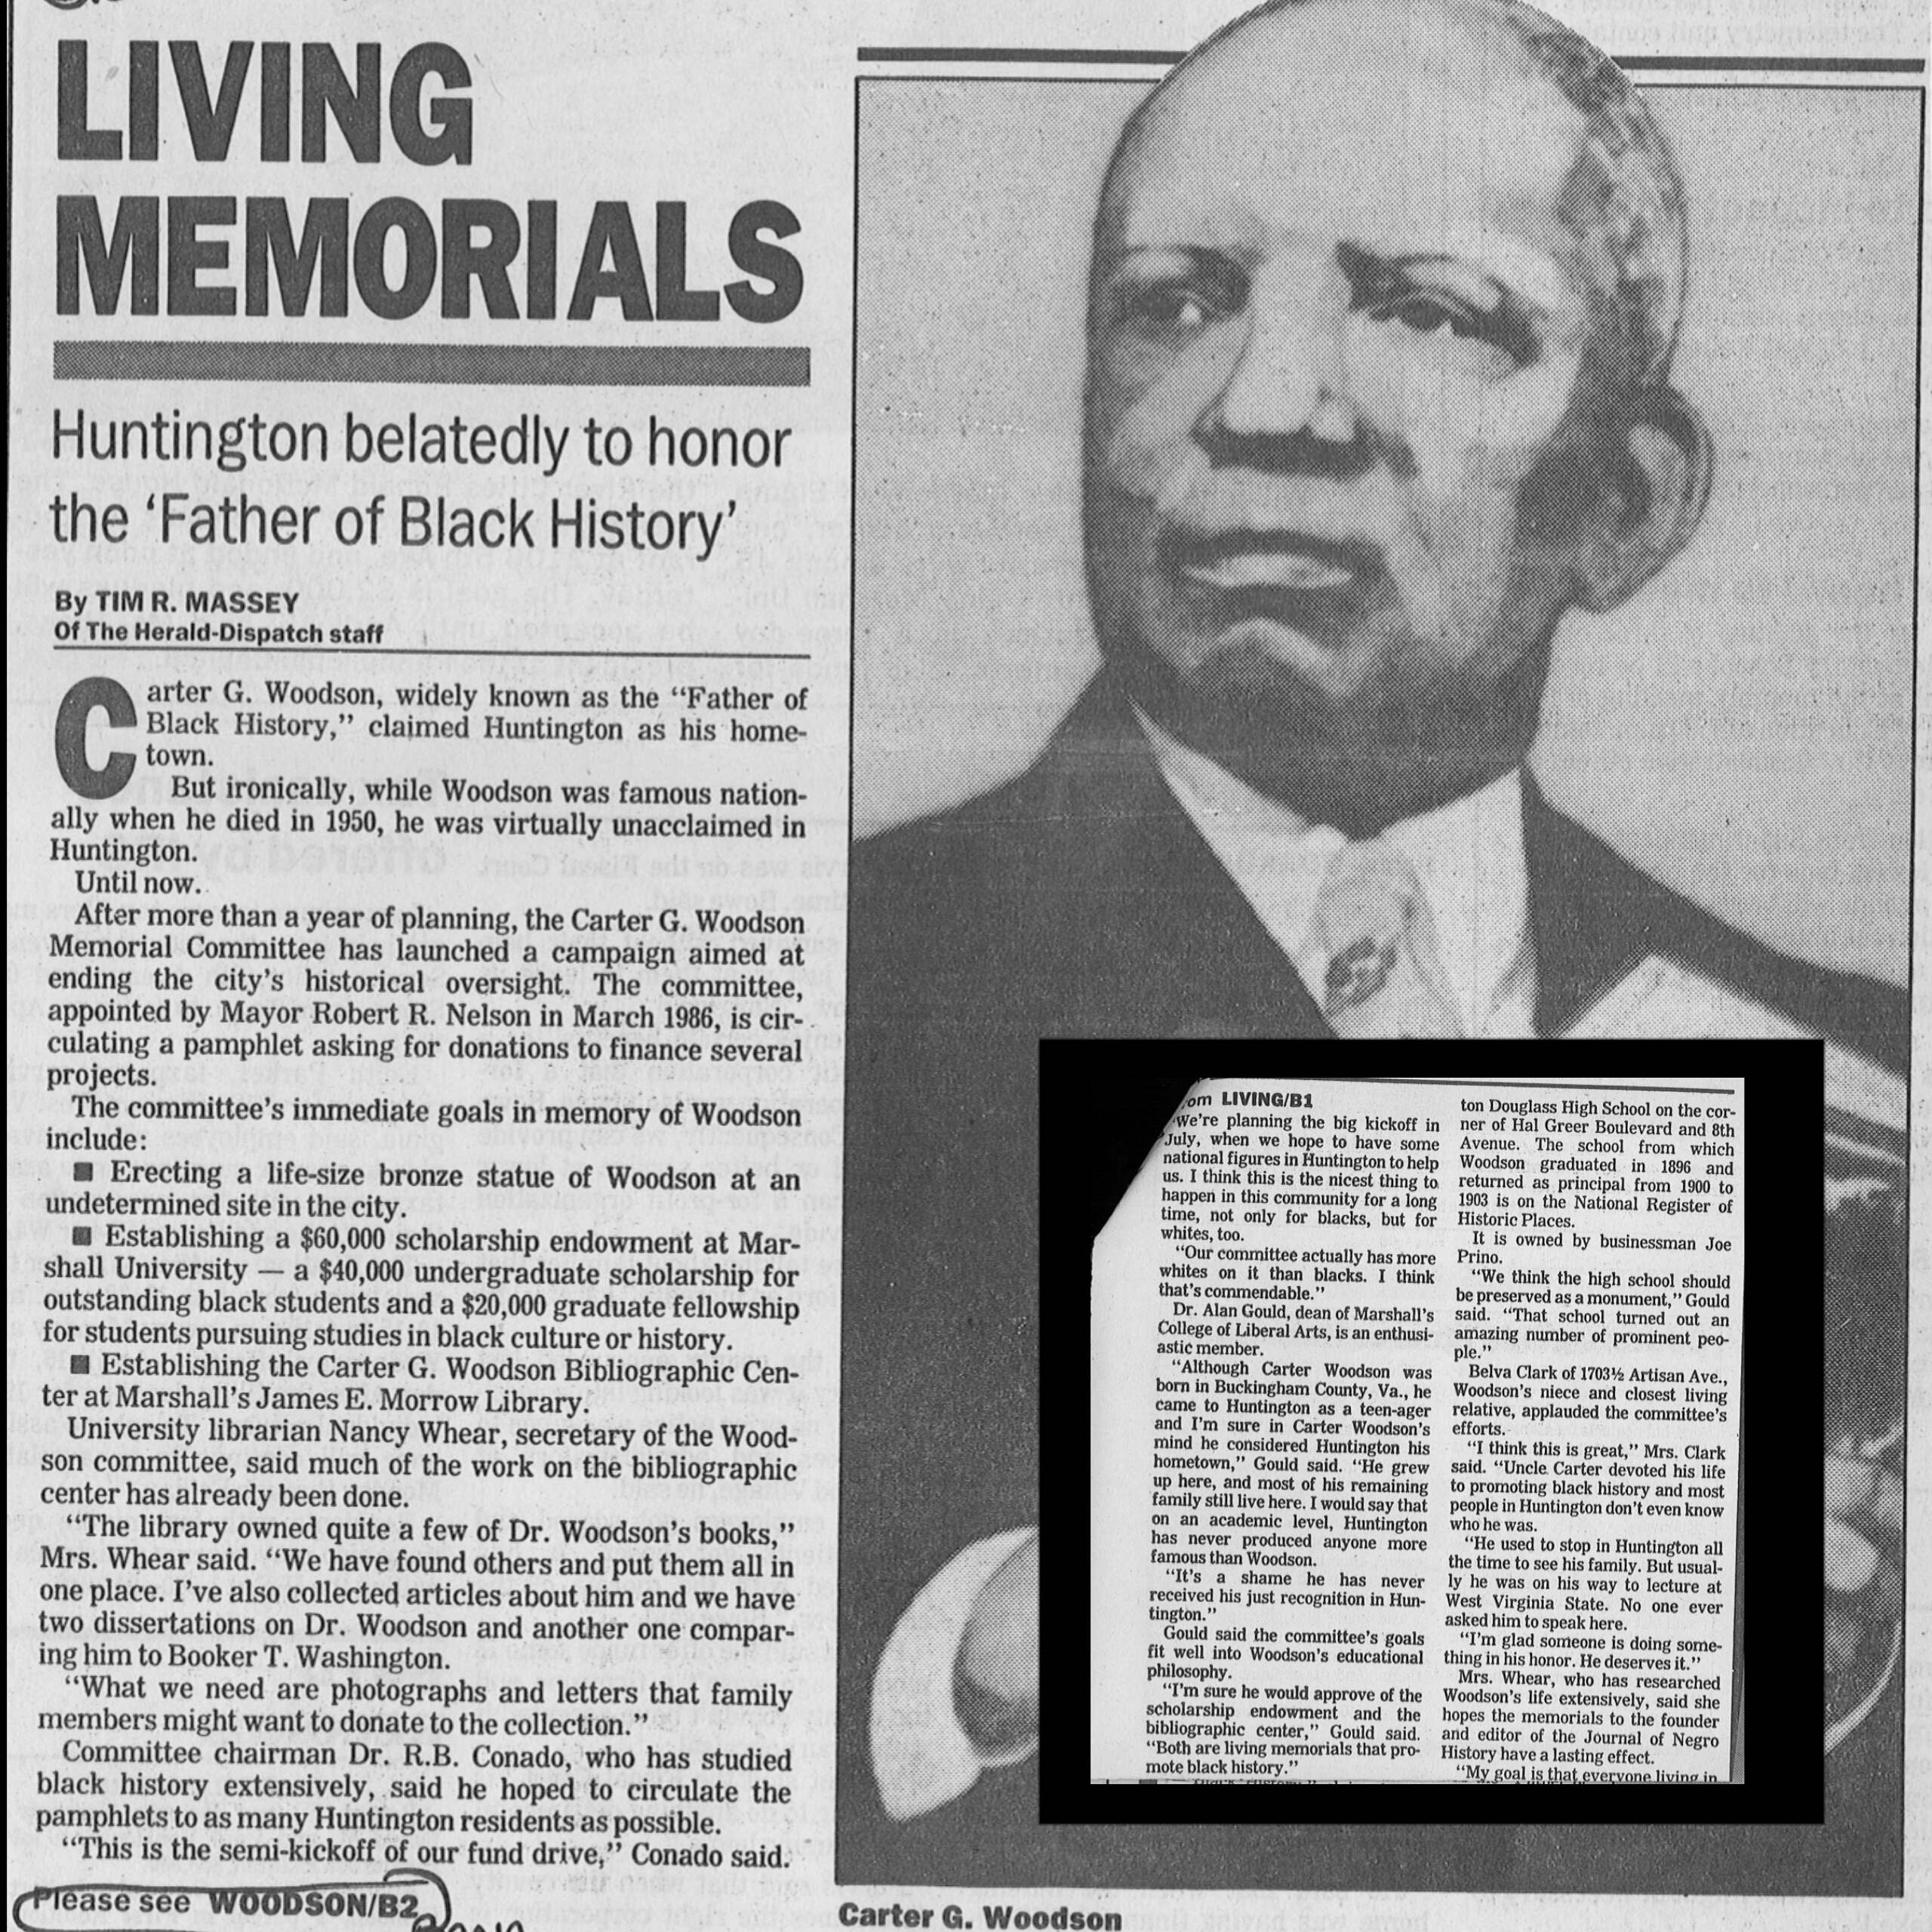 "Massey, Tim R. ""Living Memorials."" The Herald Dispatch 6 Apr. 1987: 1-2. Print.